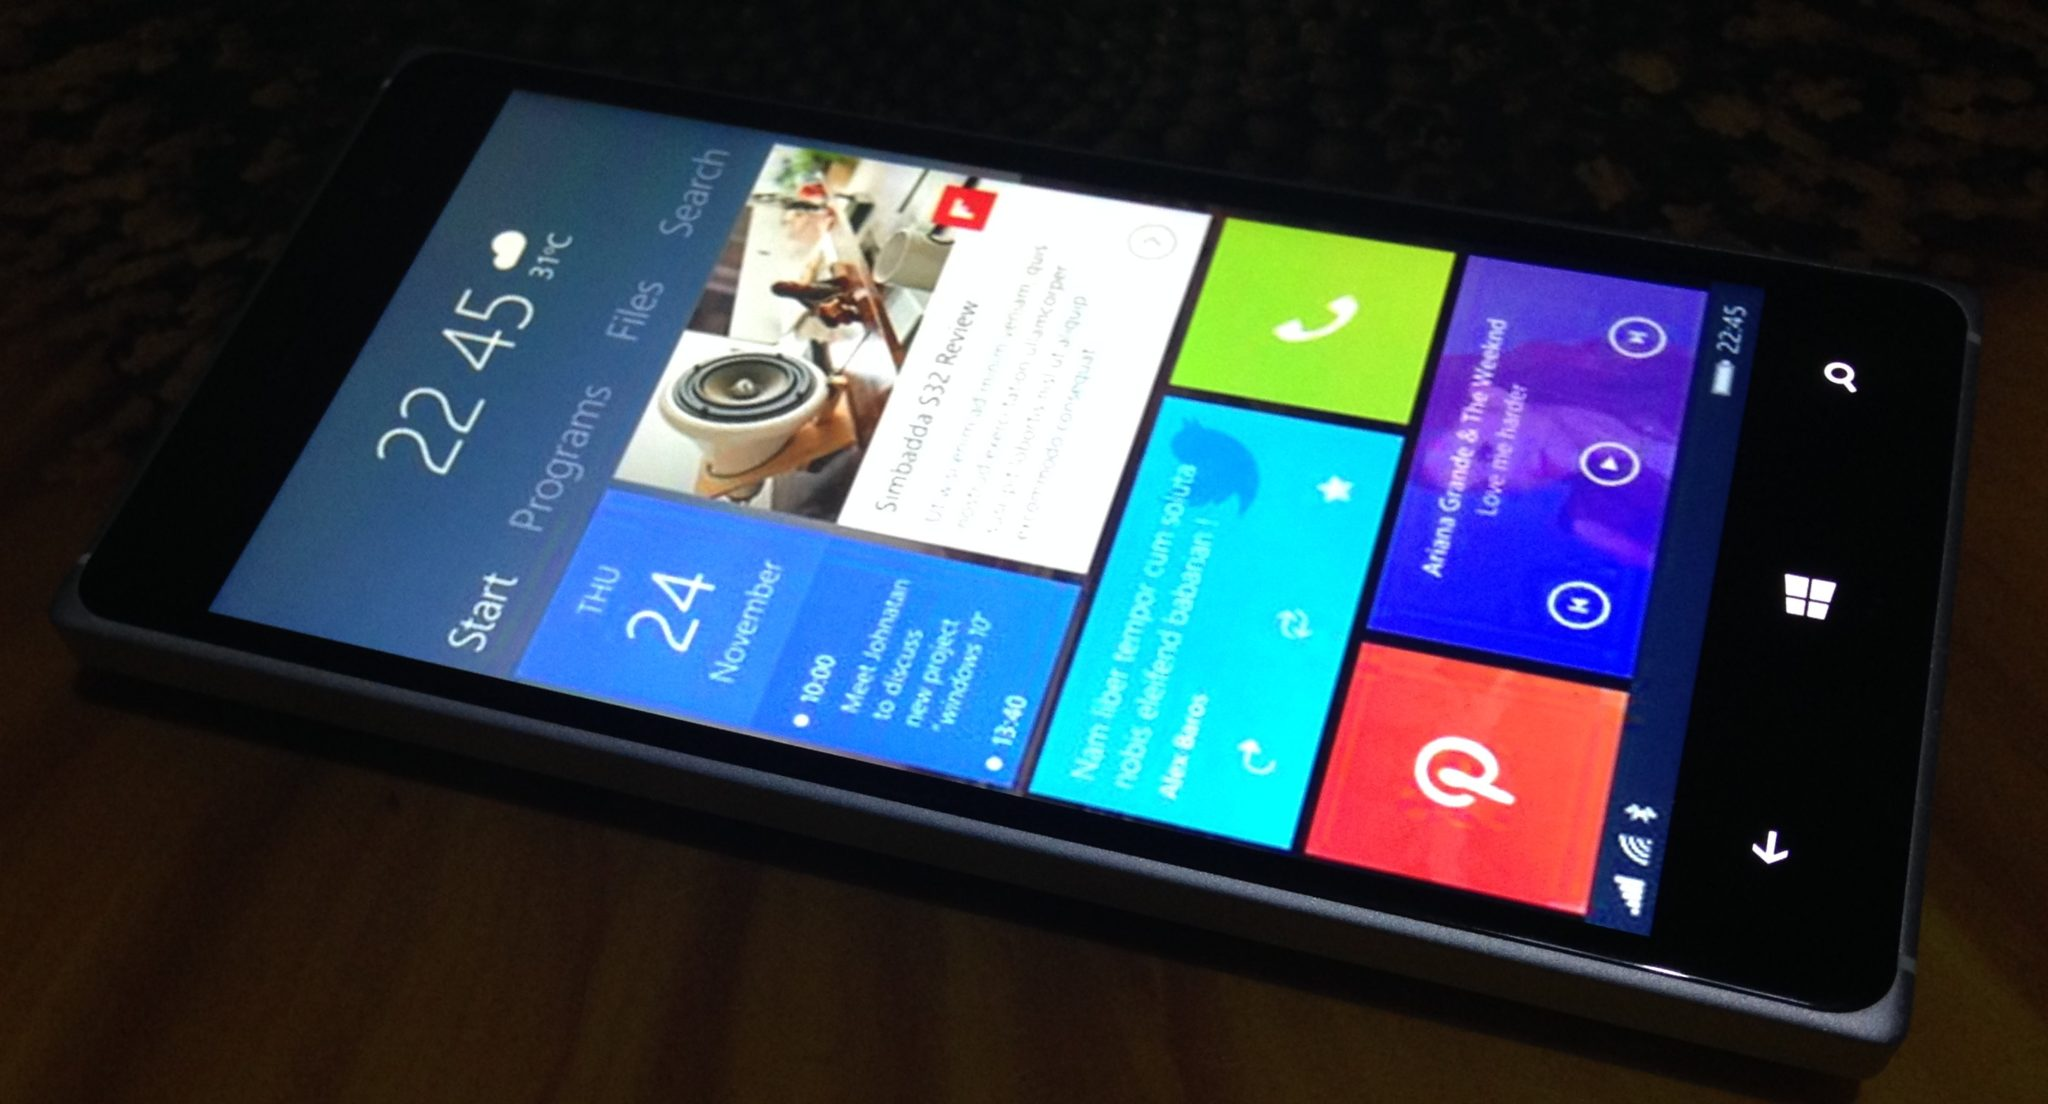 Windows Phone 7.0 and 8.0 Devices Will Not Receive Push Notifications